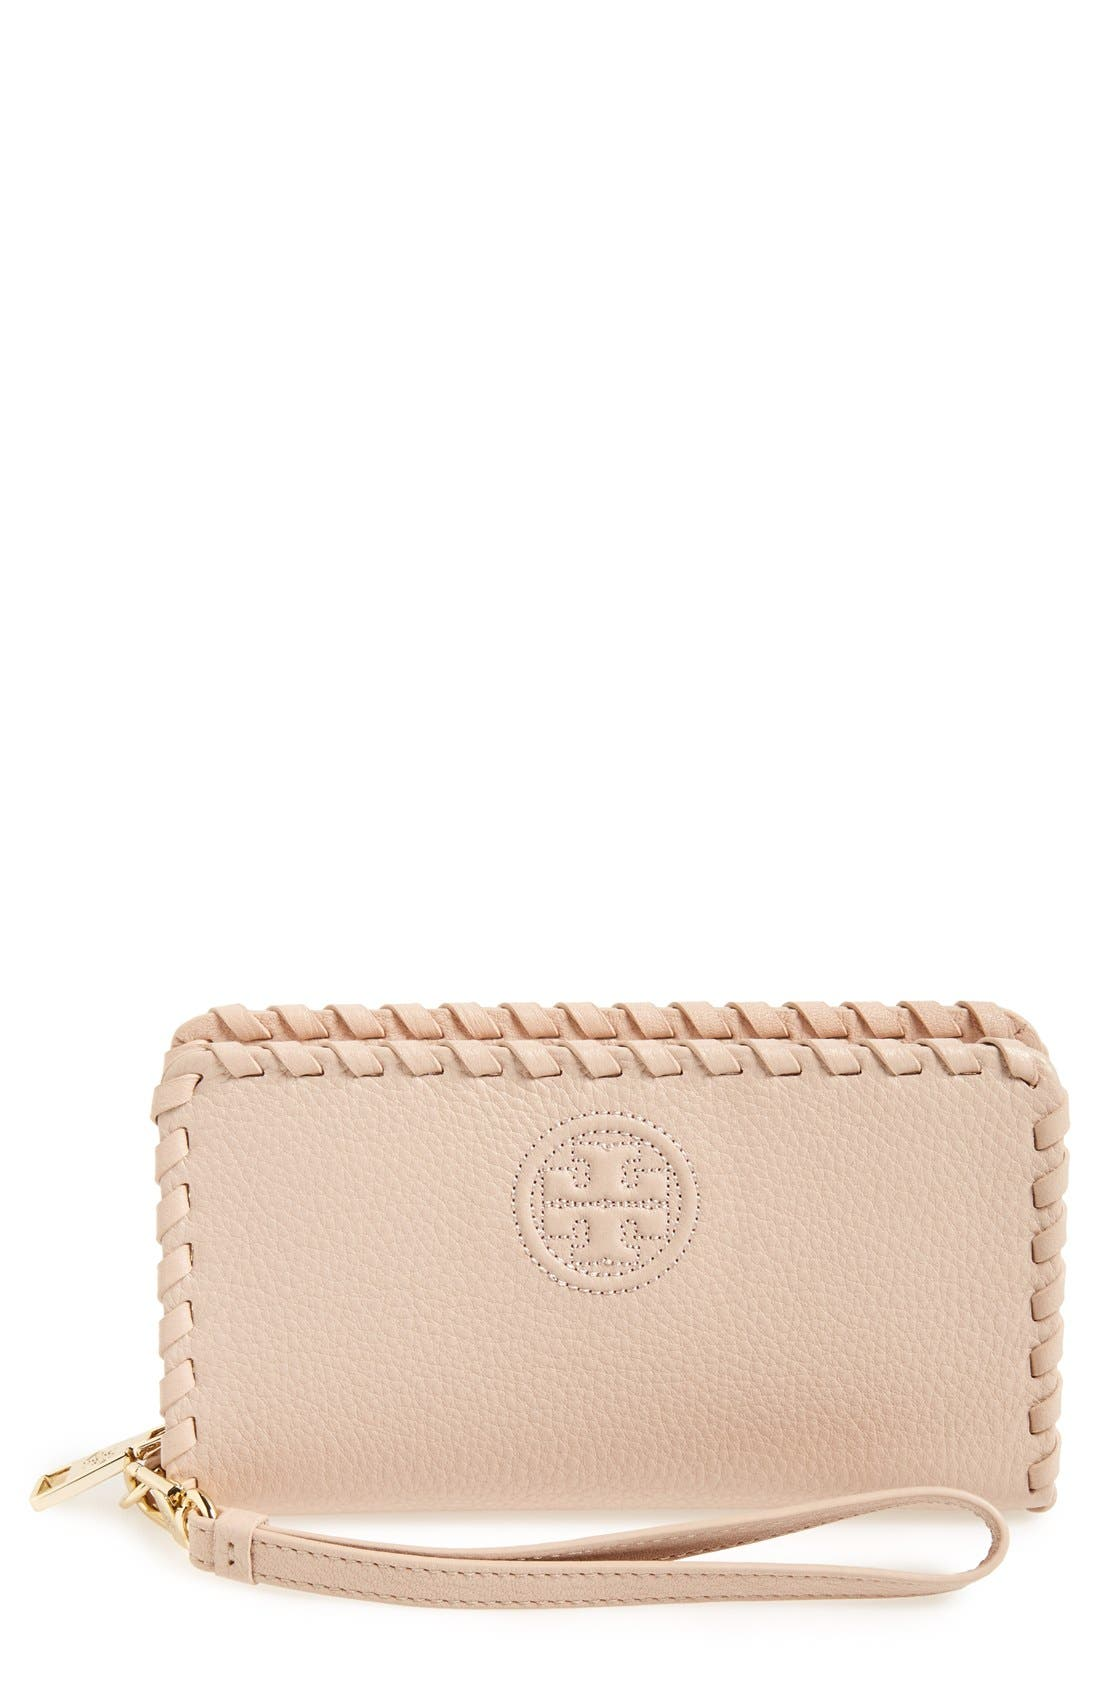 Alternate Image 1 Selected - Tory Burch 'Marion' Smartphone Wristlet